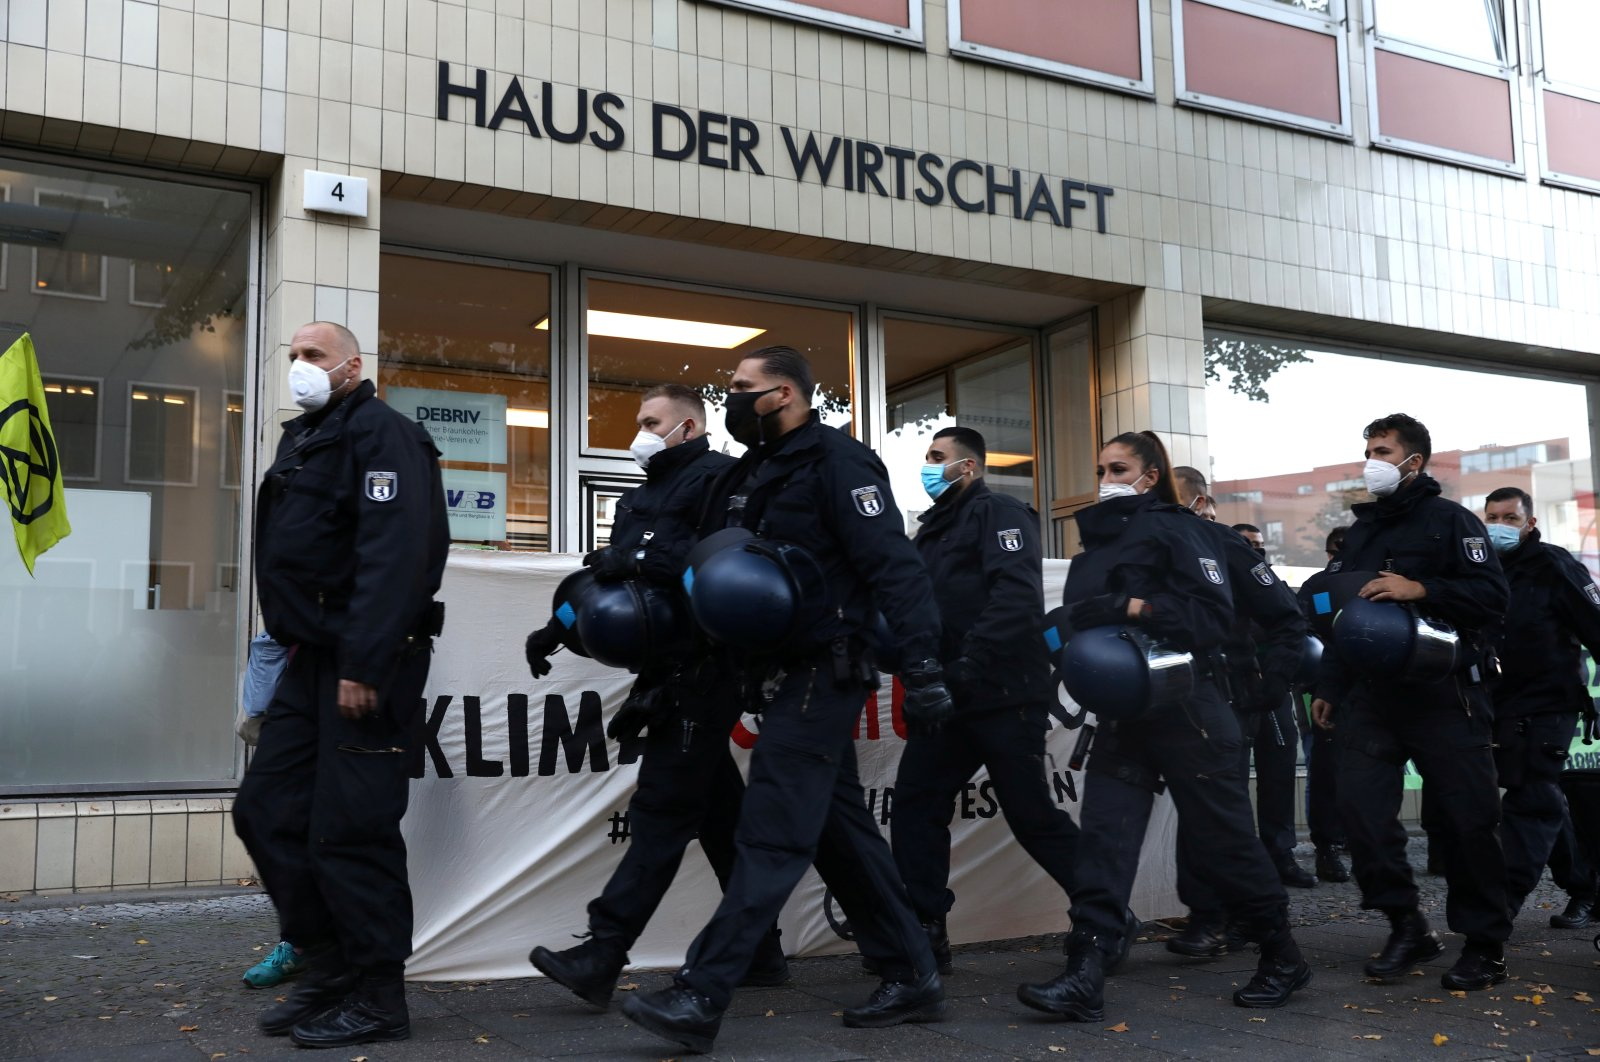 Police officers walk past Haus der Wirtschaft (House of Economy) as Extinction Rebellion activists take part in a protest in Berlin, Germany, Oct. 6, 2020. (Reuters Photo)